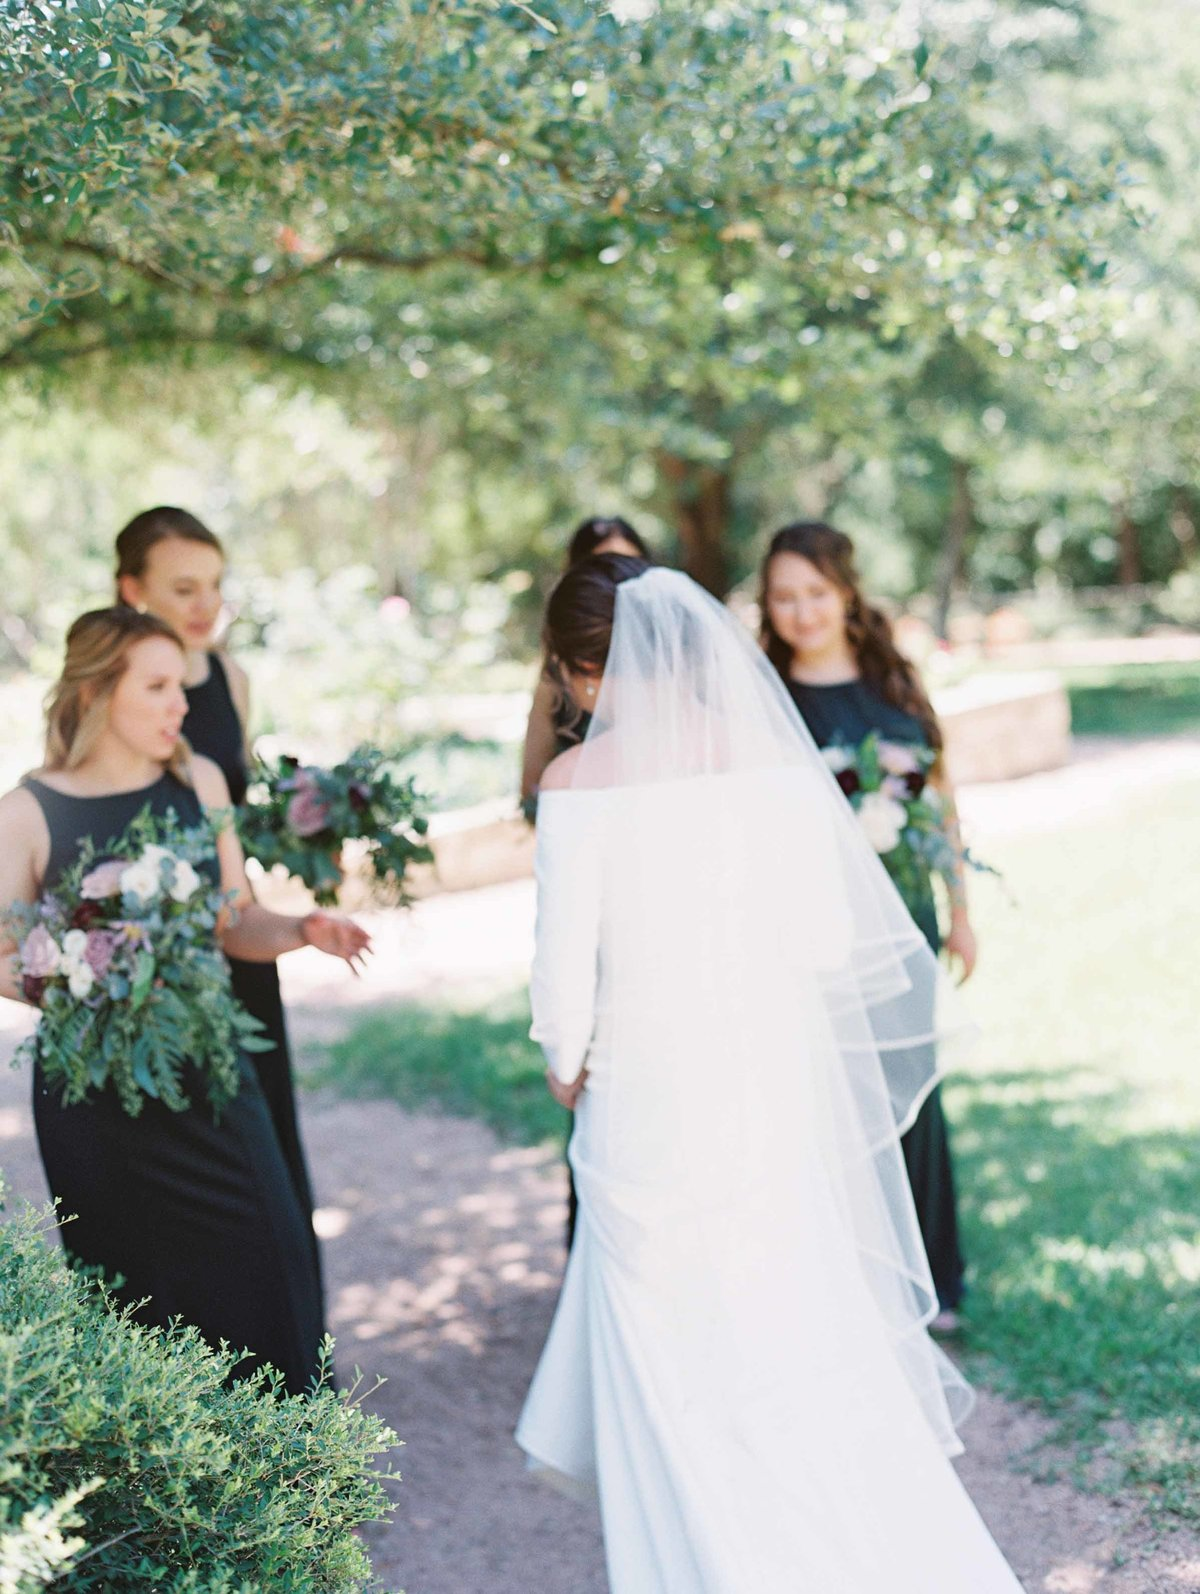 Angel_owens_photography_wedding_oliviarobert72